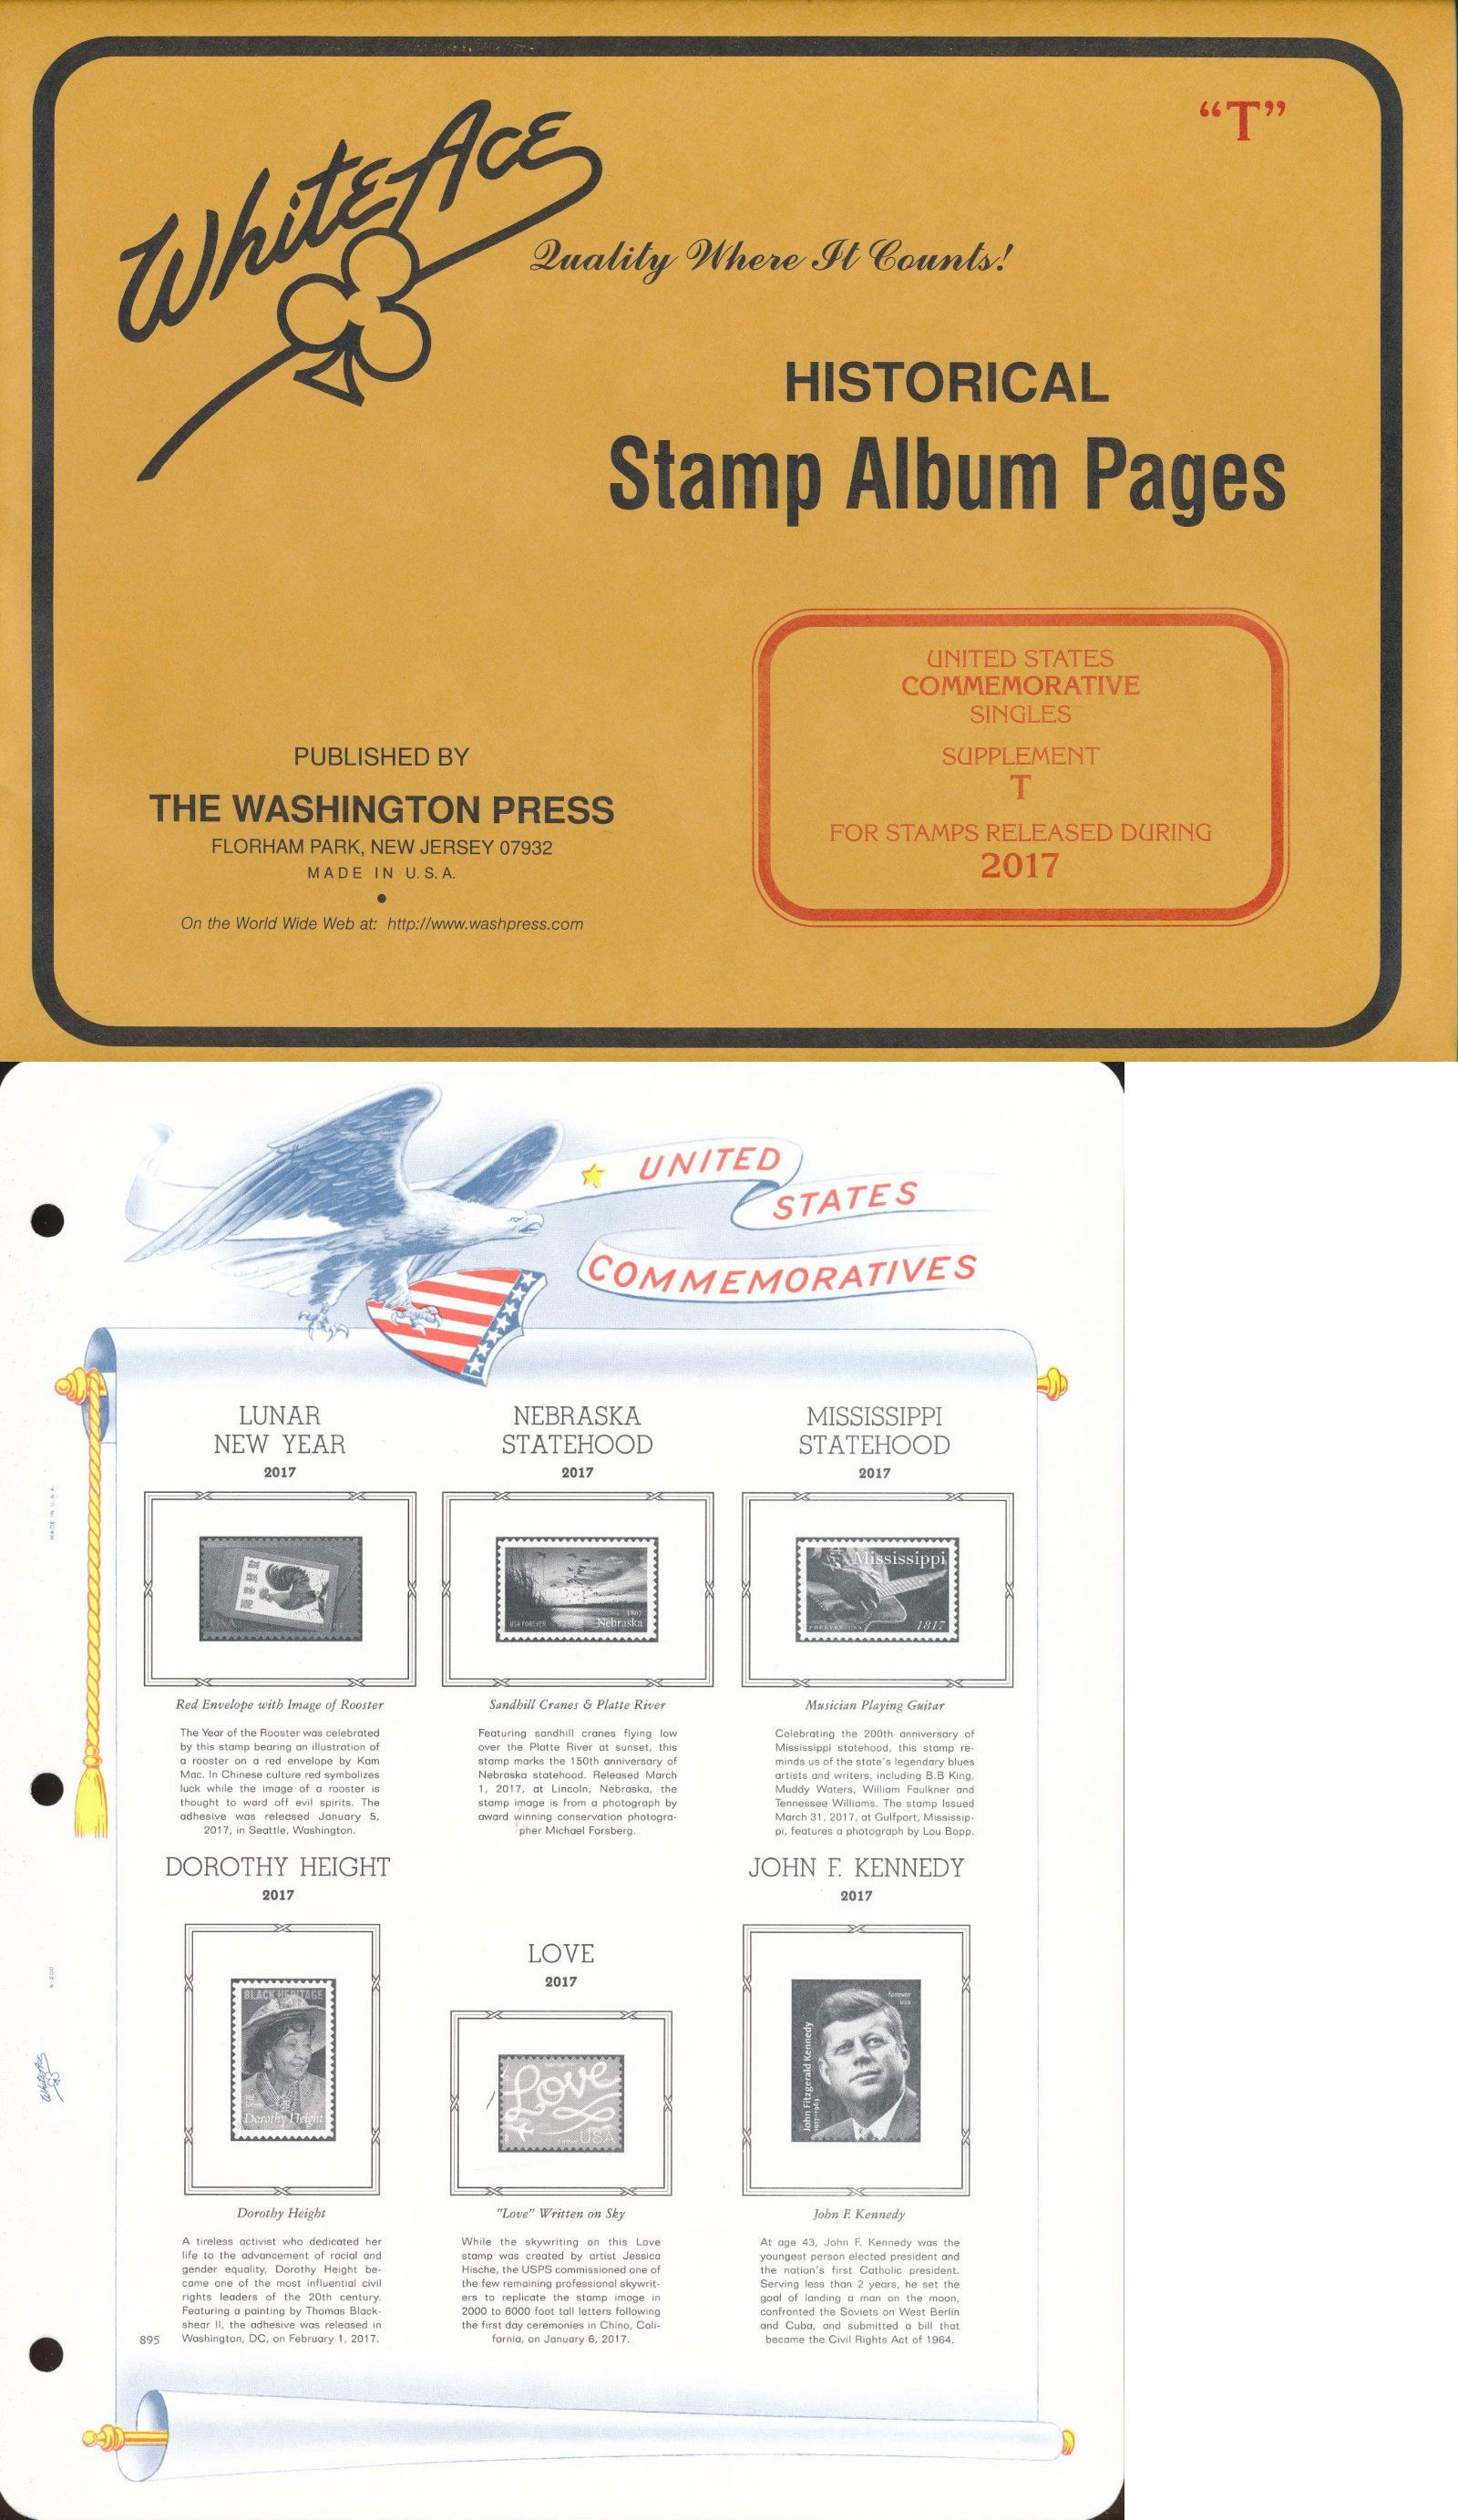 Albums 162057: White Ace Us Commemorative Singles For 2017